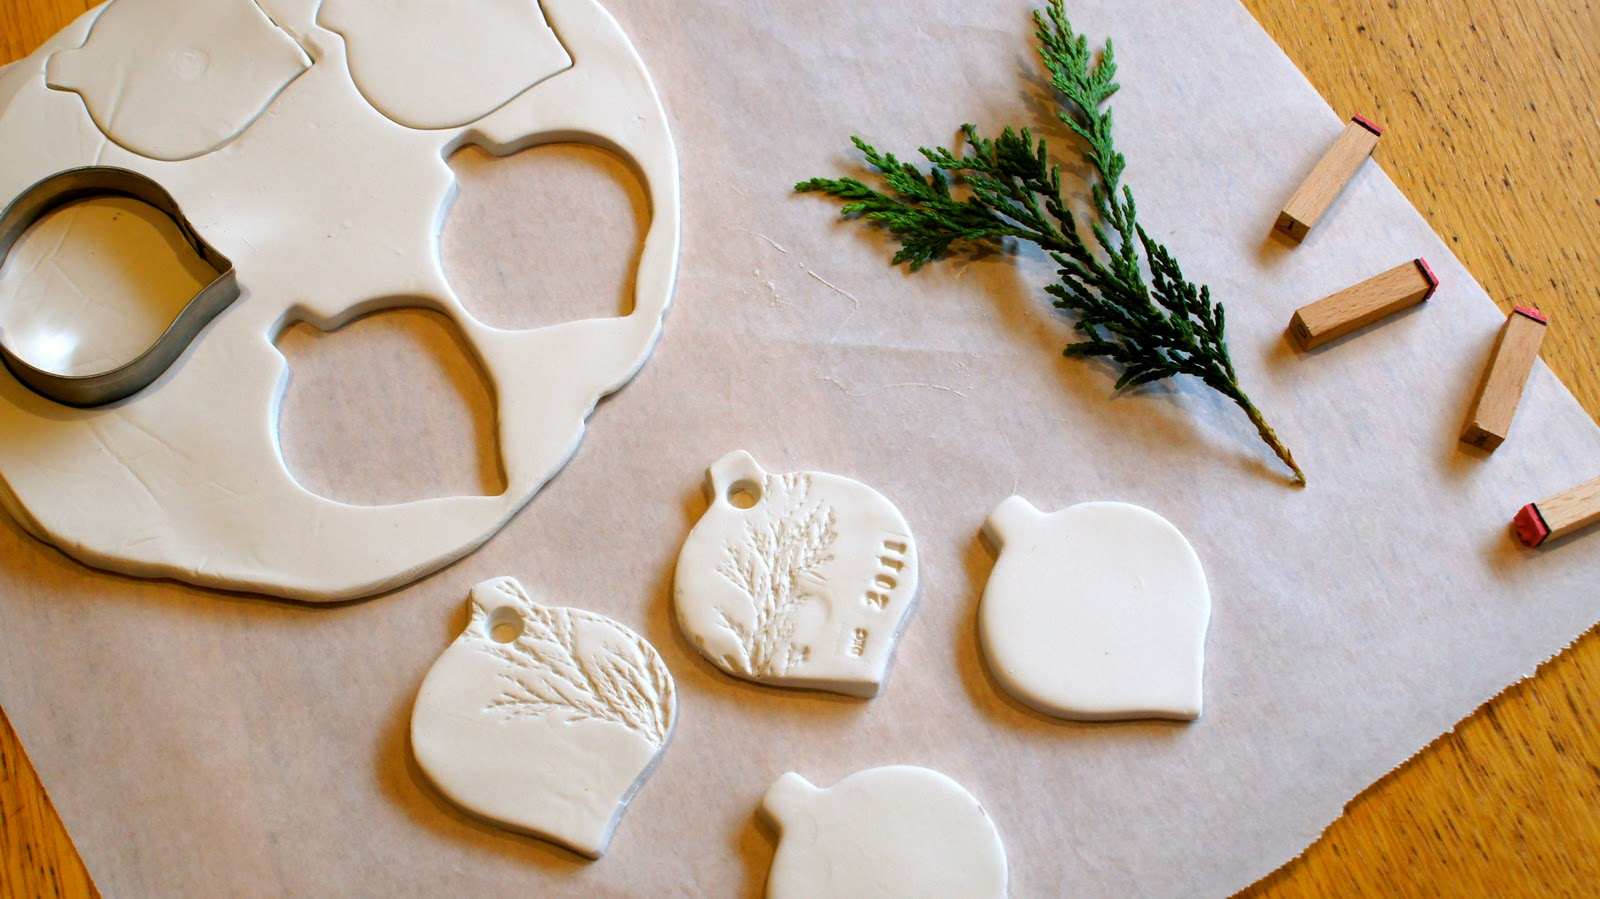 Christmas Decorations Made From Clay : My creative space clay decorations